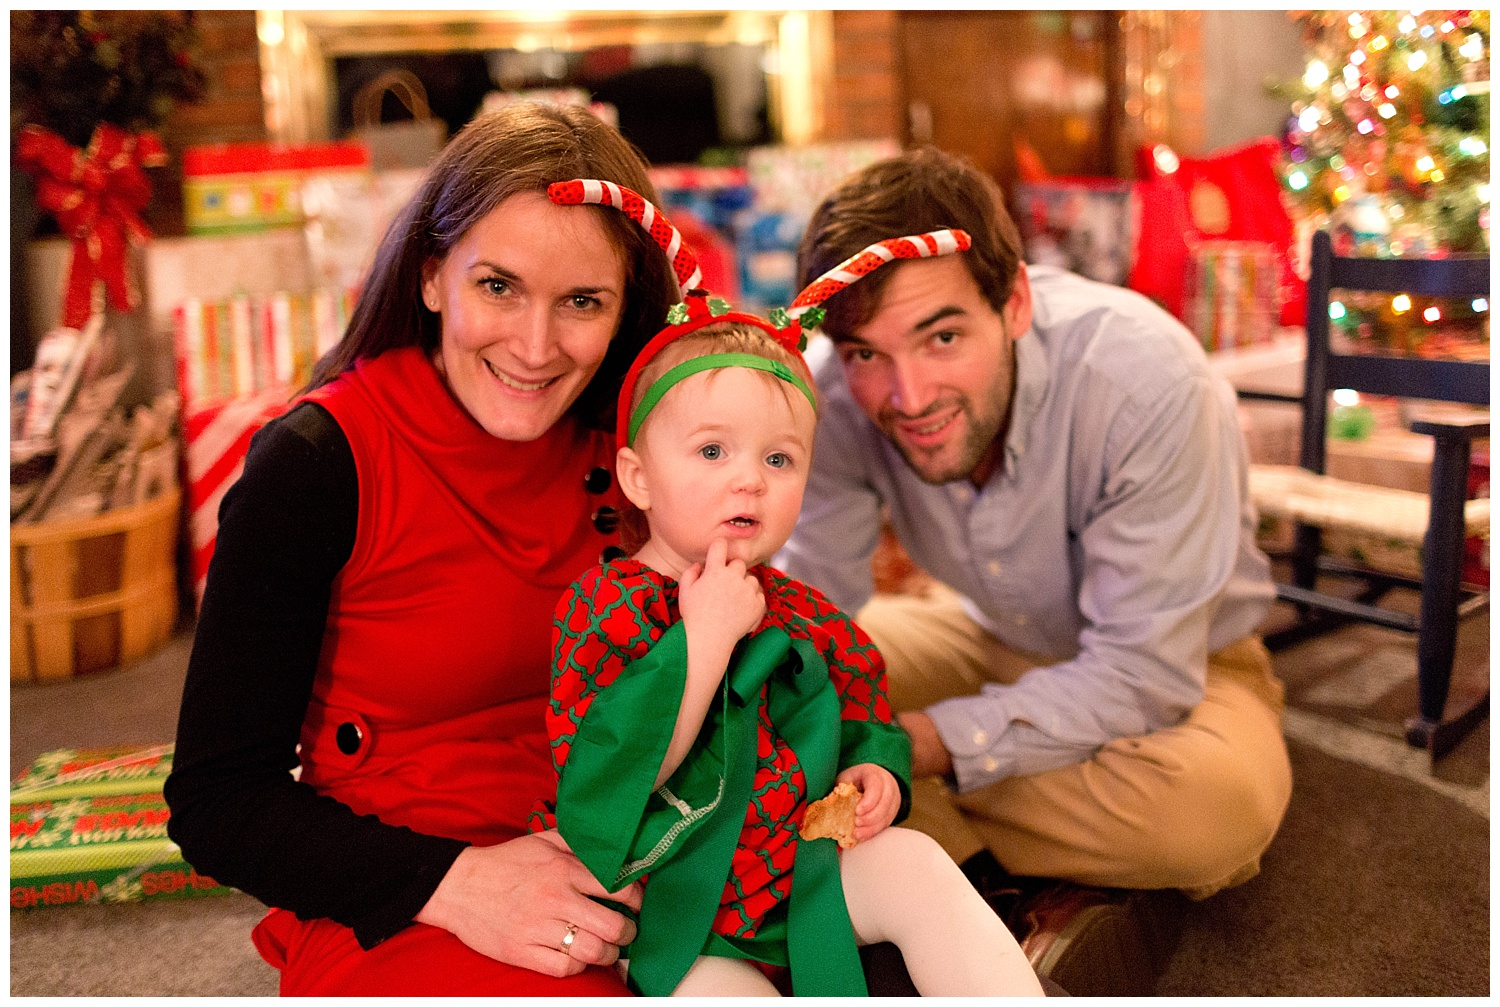 baby girl with mom and uncle at Christmas